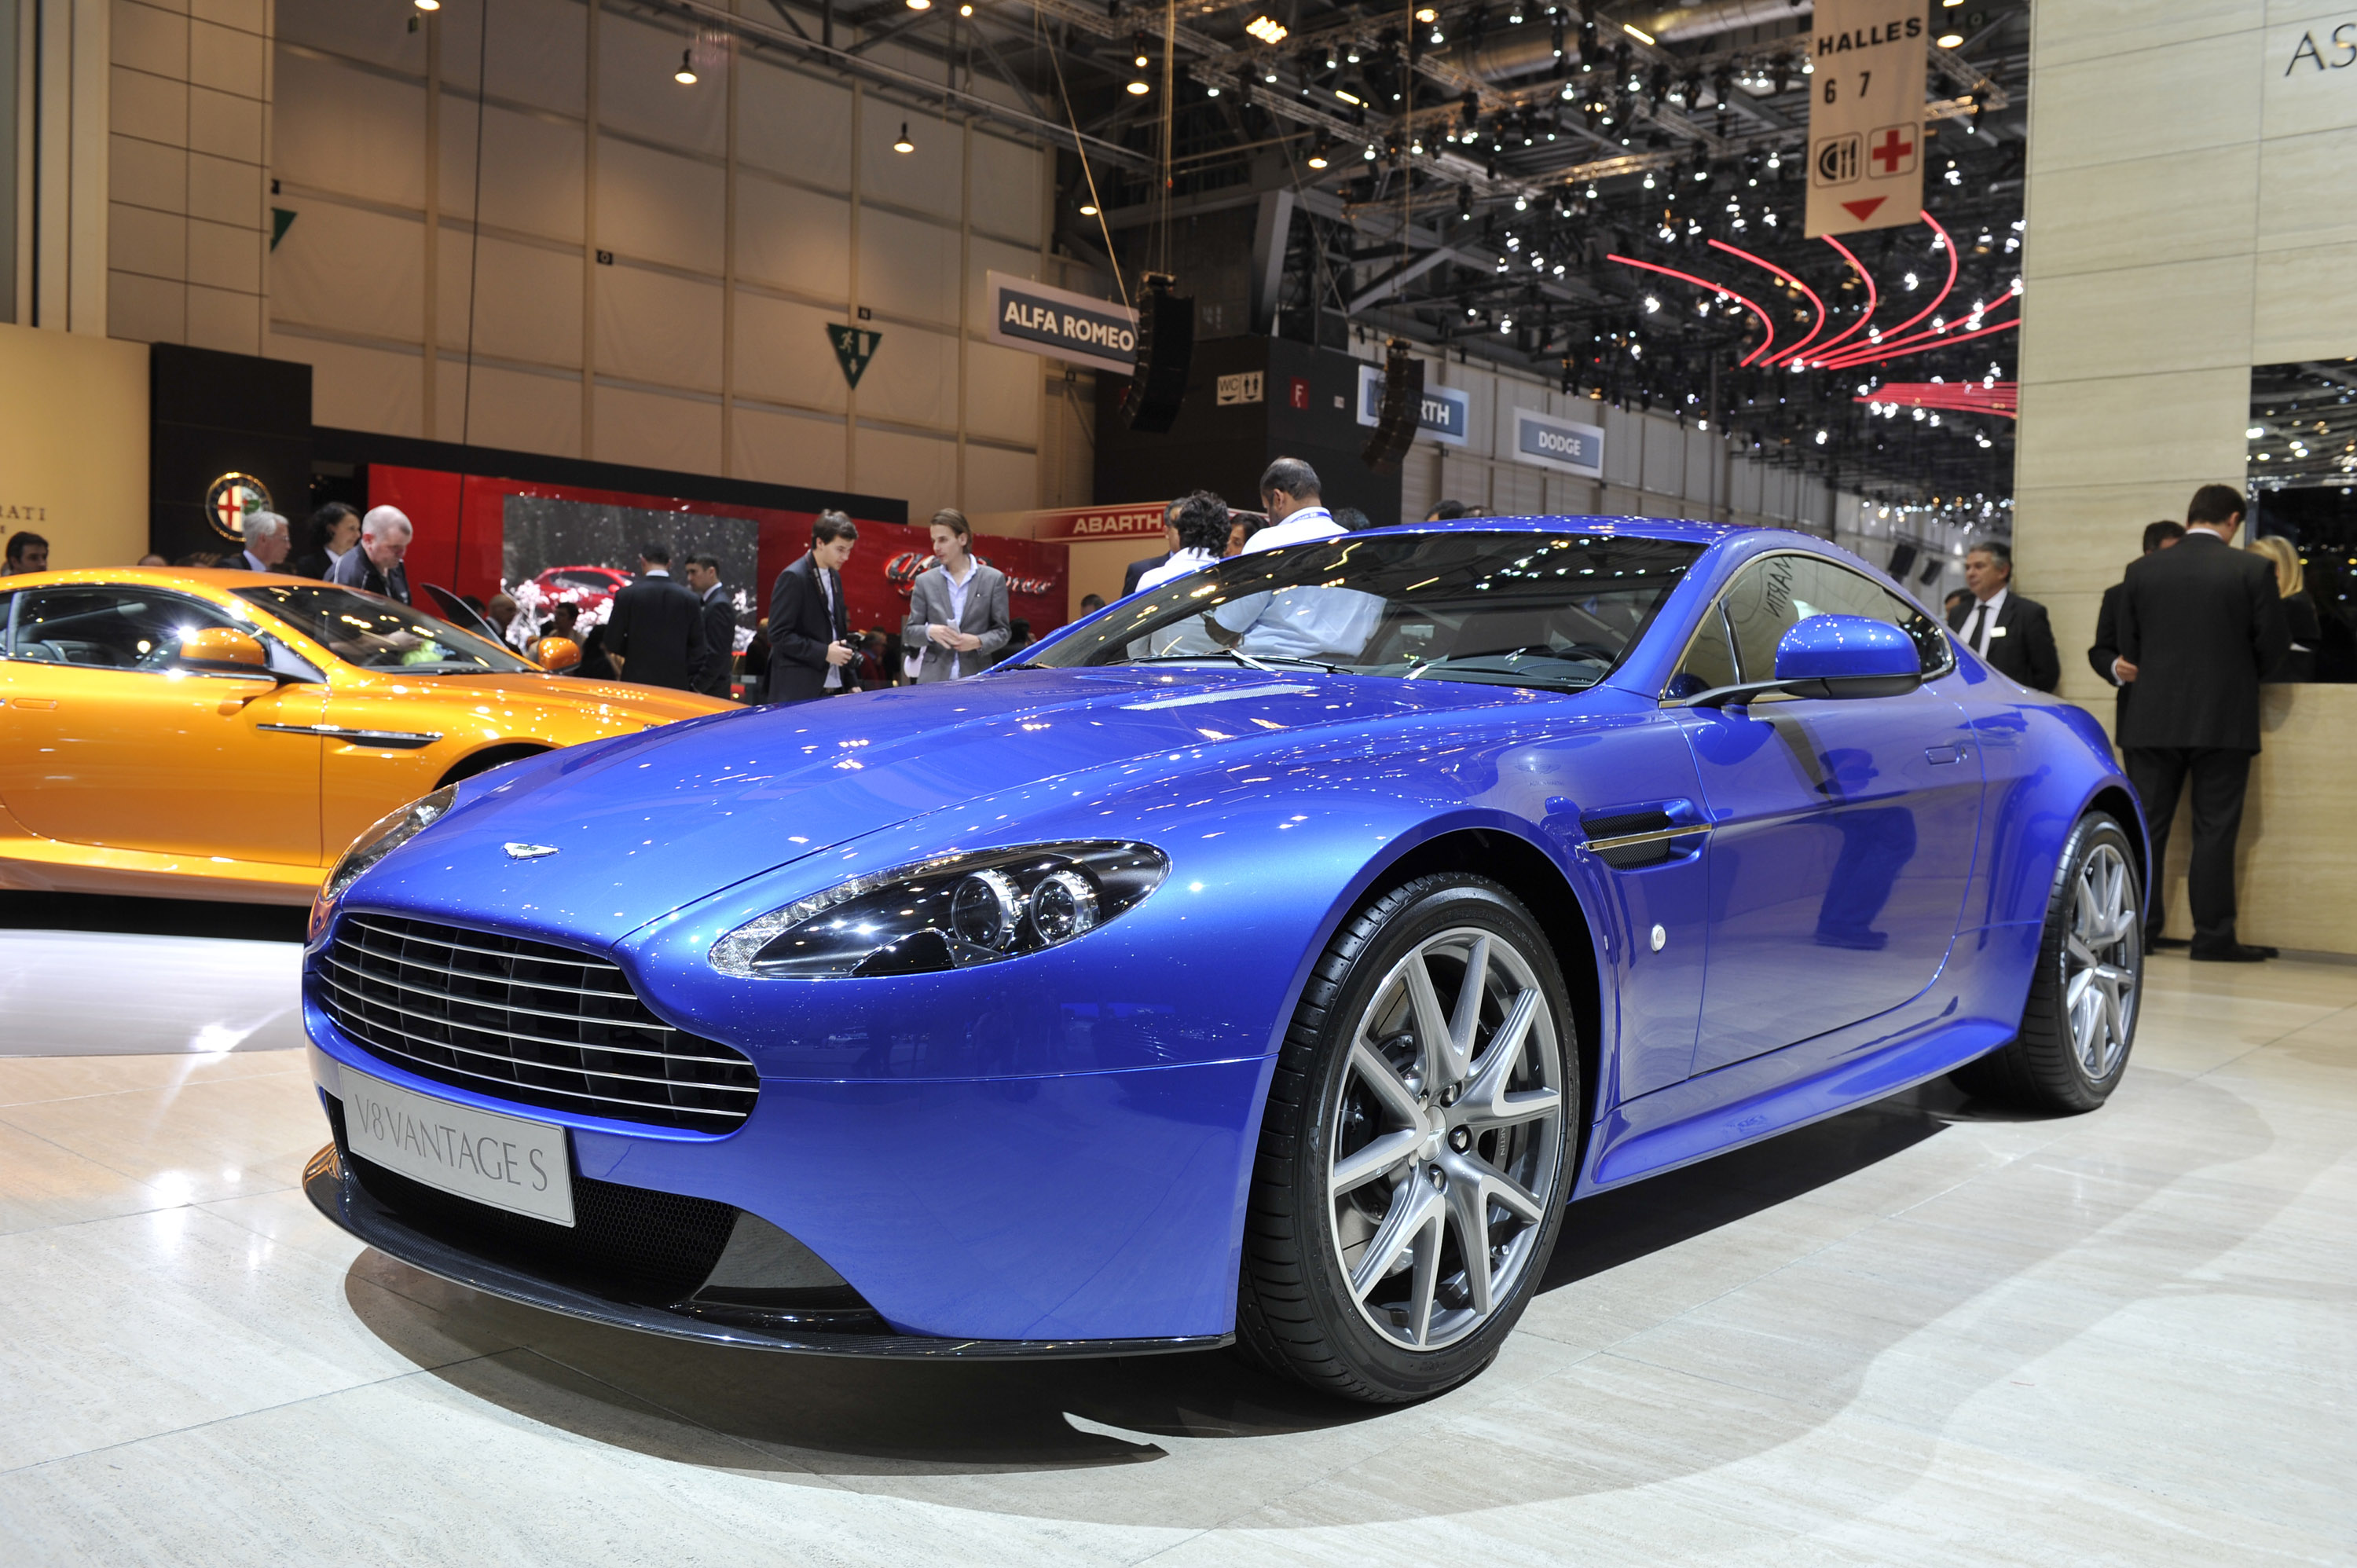 aston martin v8 vantage s review video. Black Bedroom Furniture Sets. Home Design Ideas